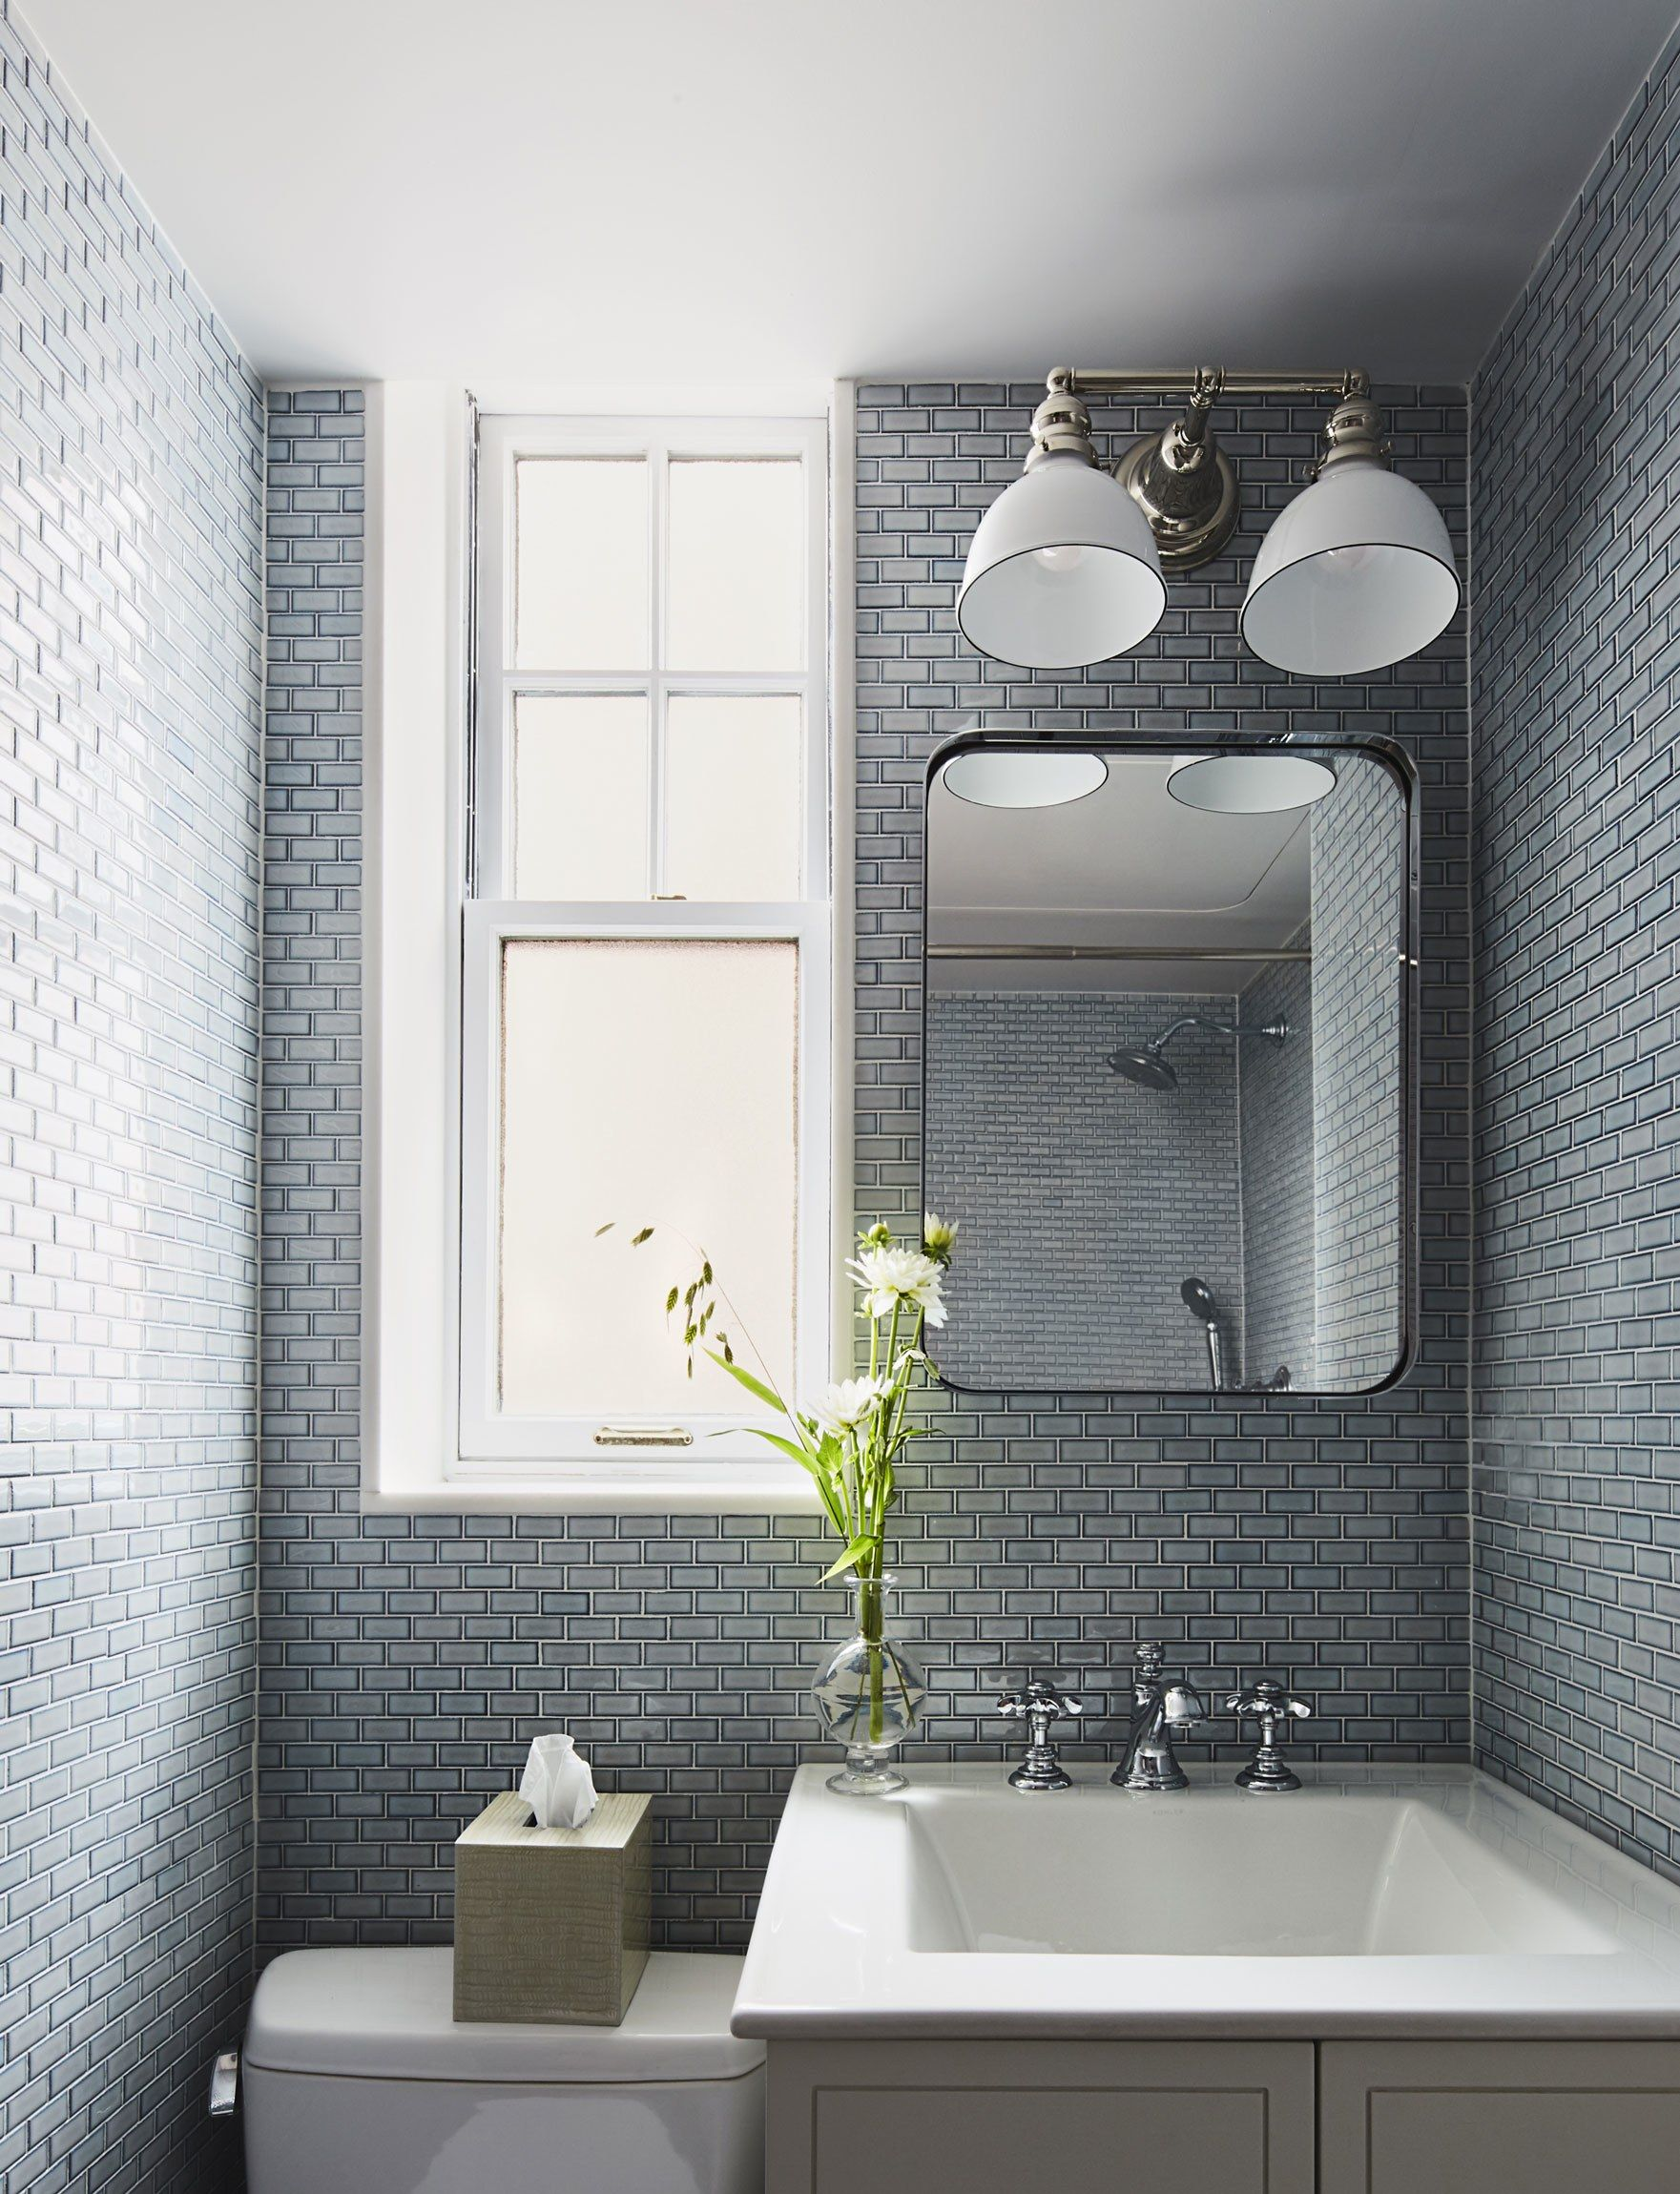 This Tile Trick Is A Game Changer For Small Bathrooms Bathroom